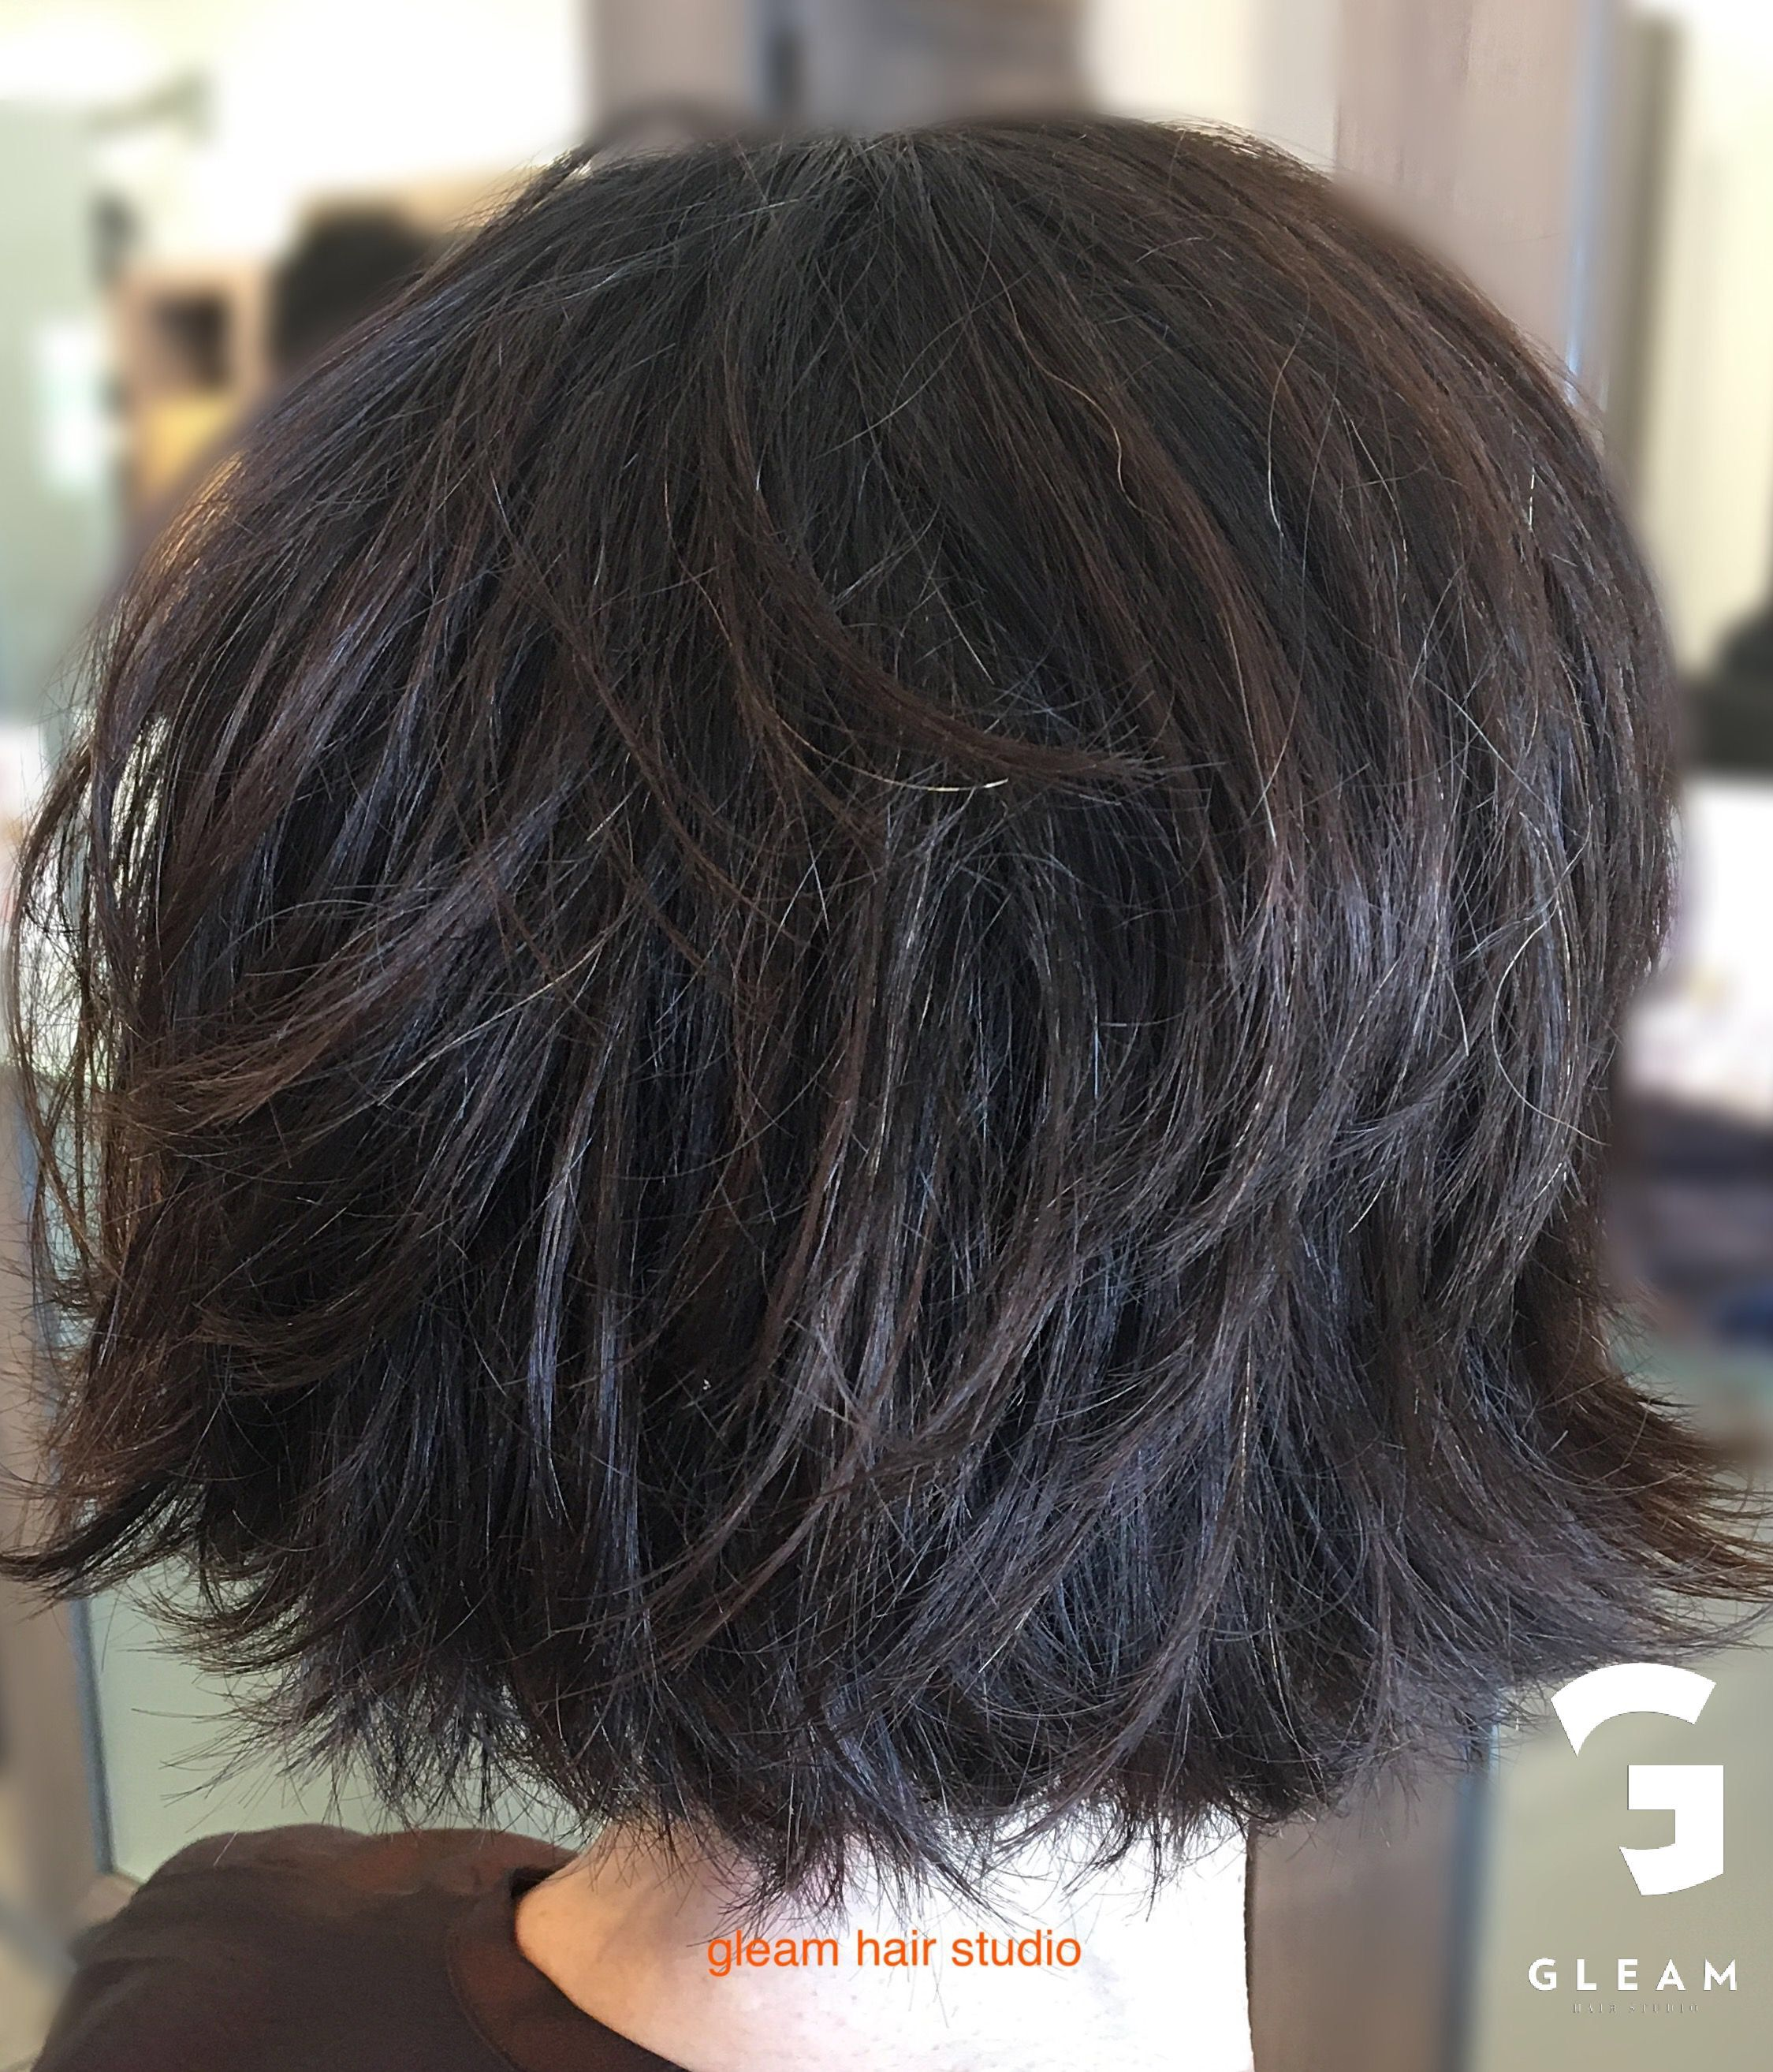 edgy wash and wear look! gleam hair studio miami | hair in